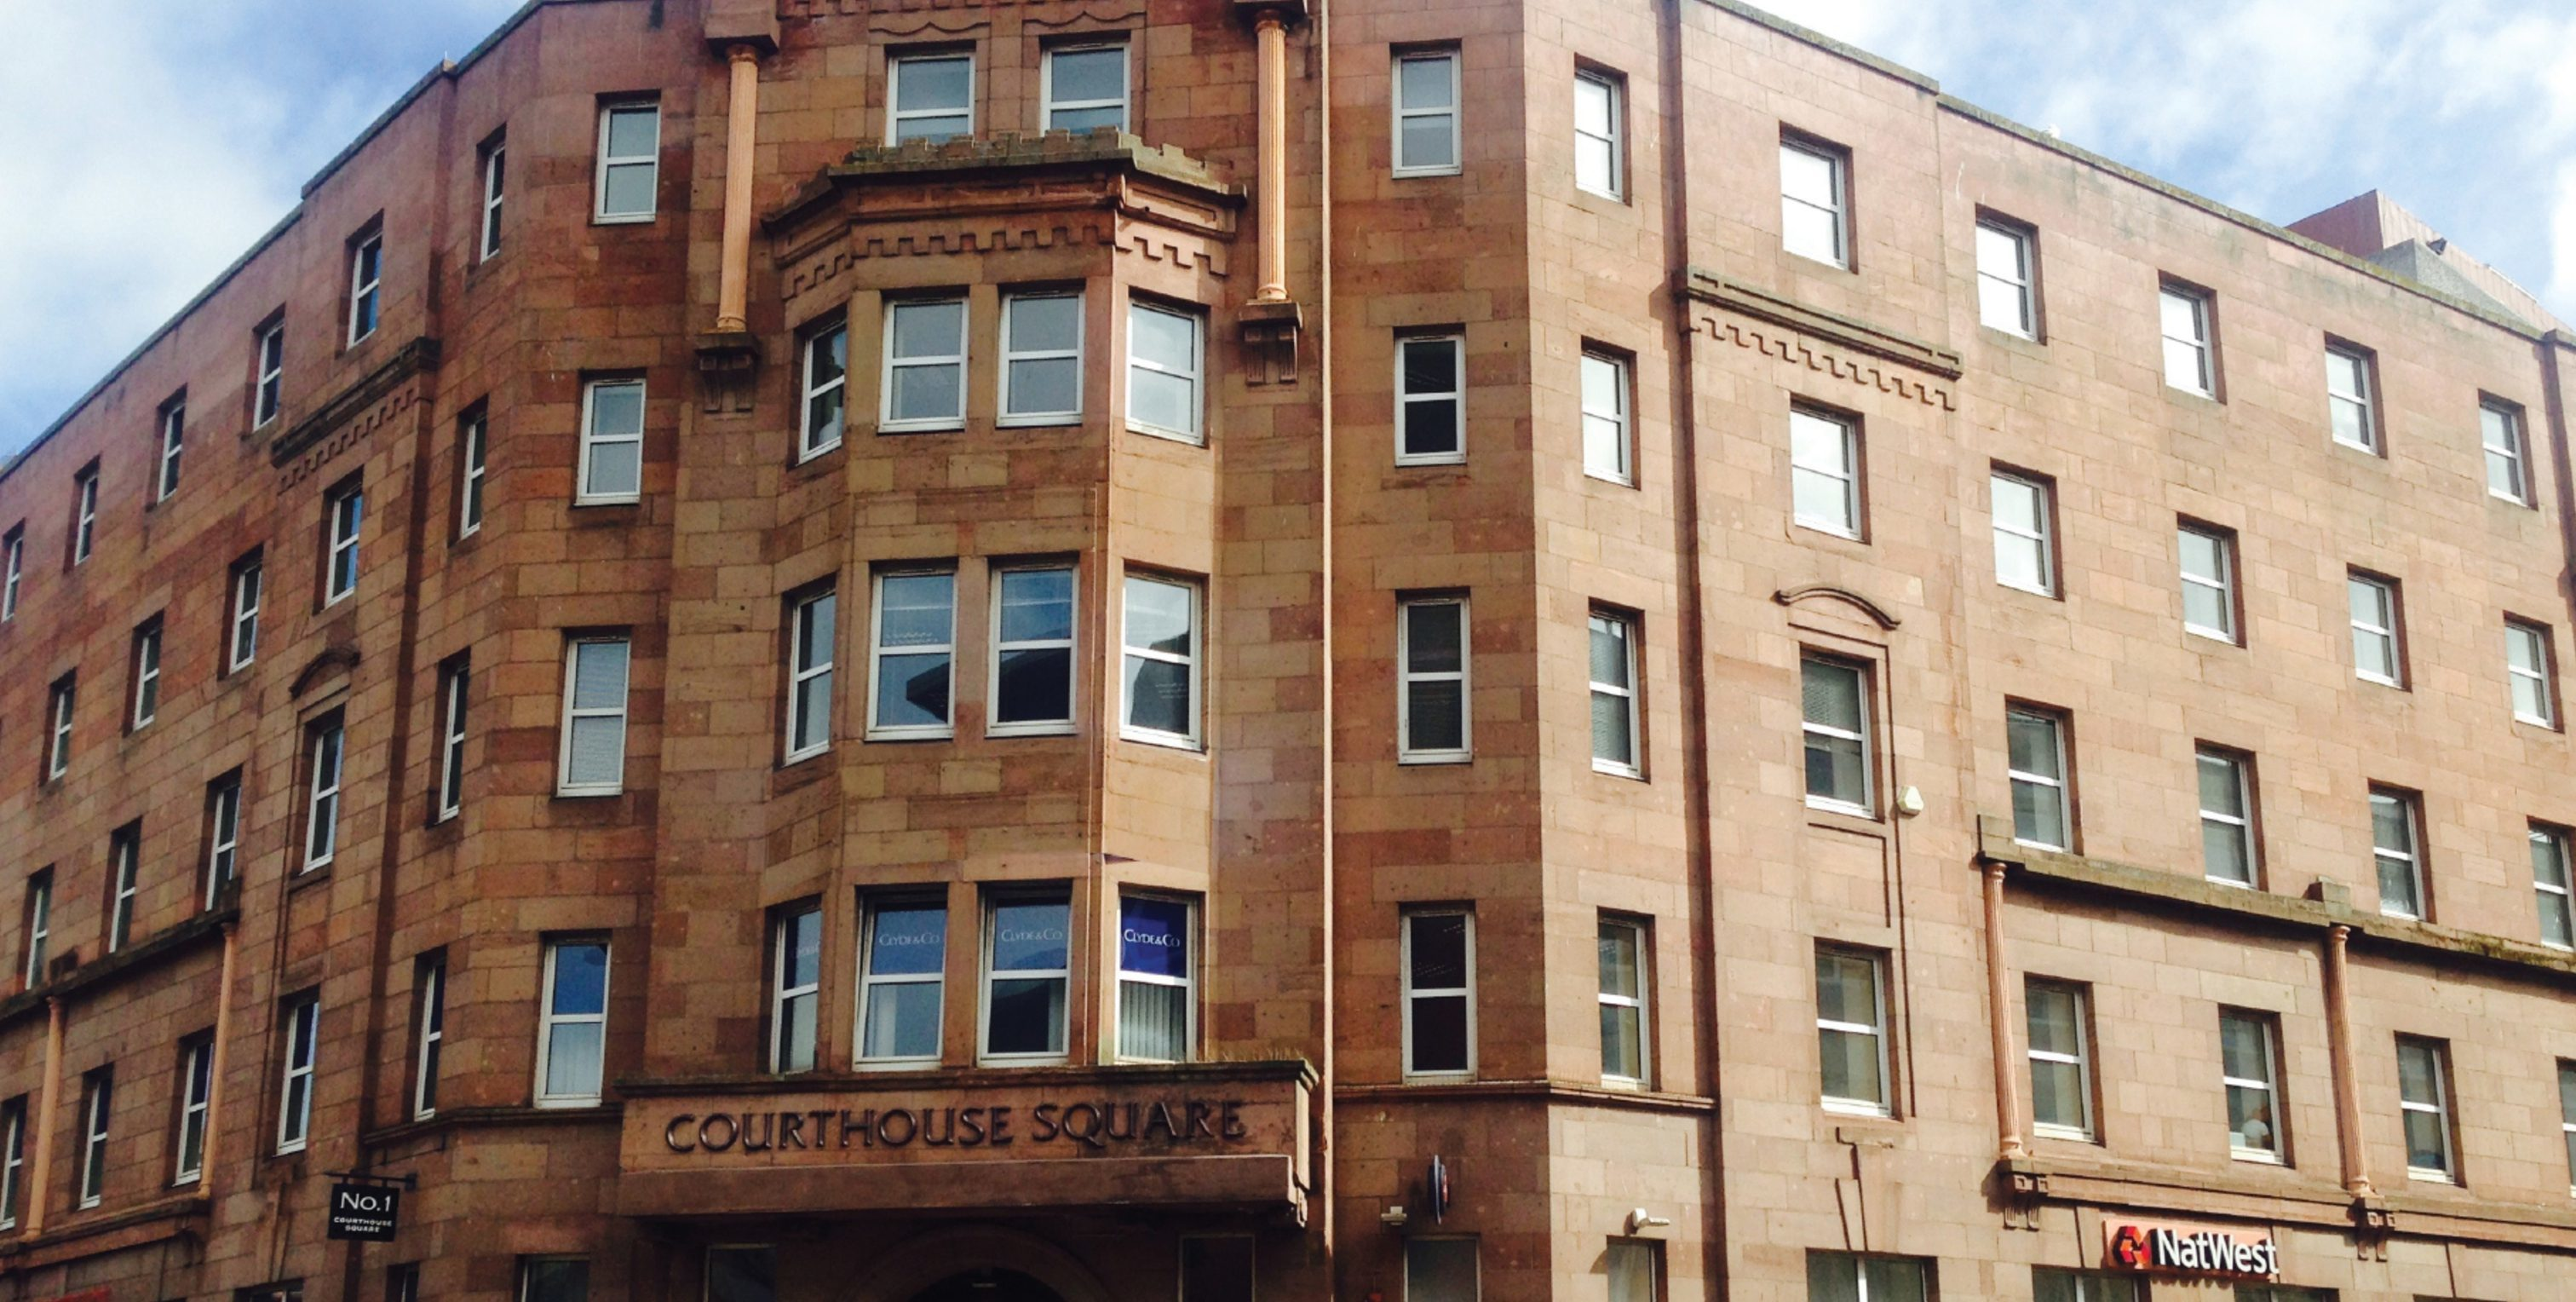 1 Courthouse Square Dundee